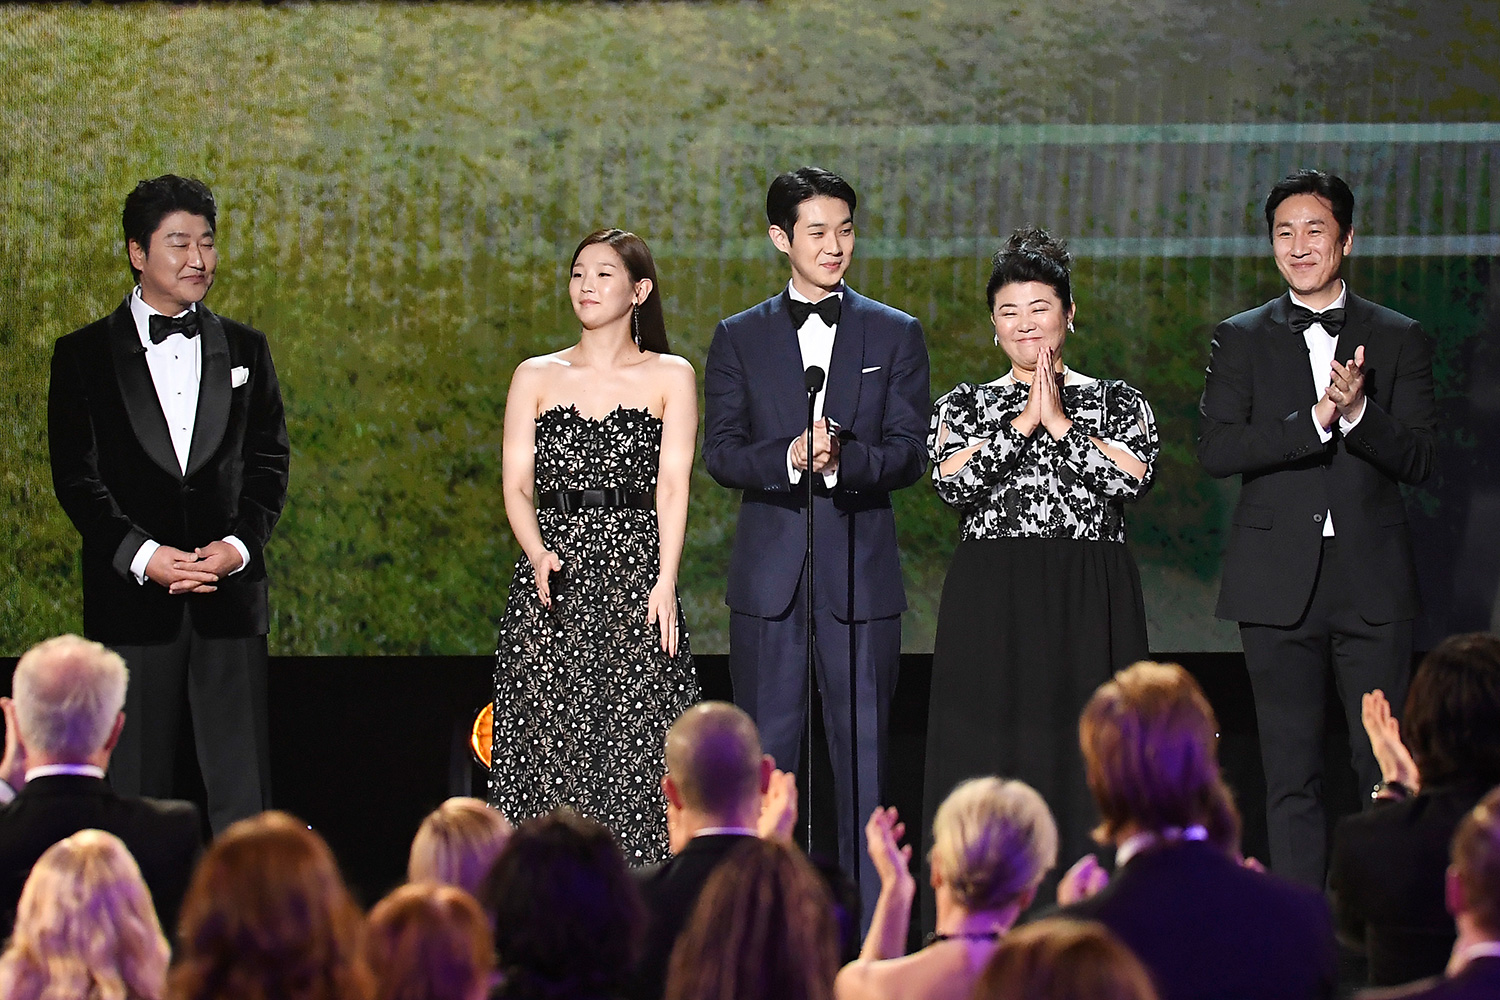 Kang-ho Song, So-dam Park, Woo-sik Choi, Jeong-eun Lee, and Sun-kyun Lee speak onstage during the 26th Annual Screen Actors Guild Awards at The Shrine Auditorium on January 19, 2020 in Los Angeles, California